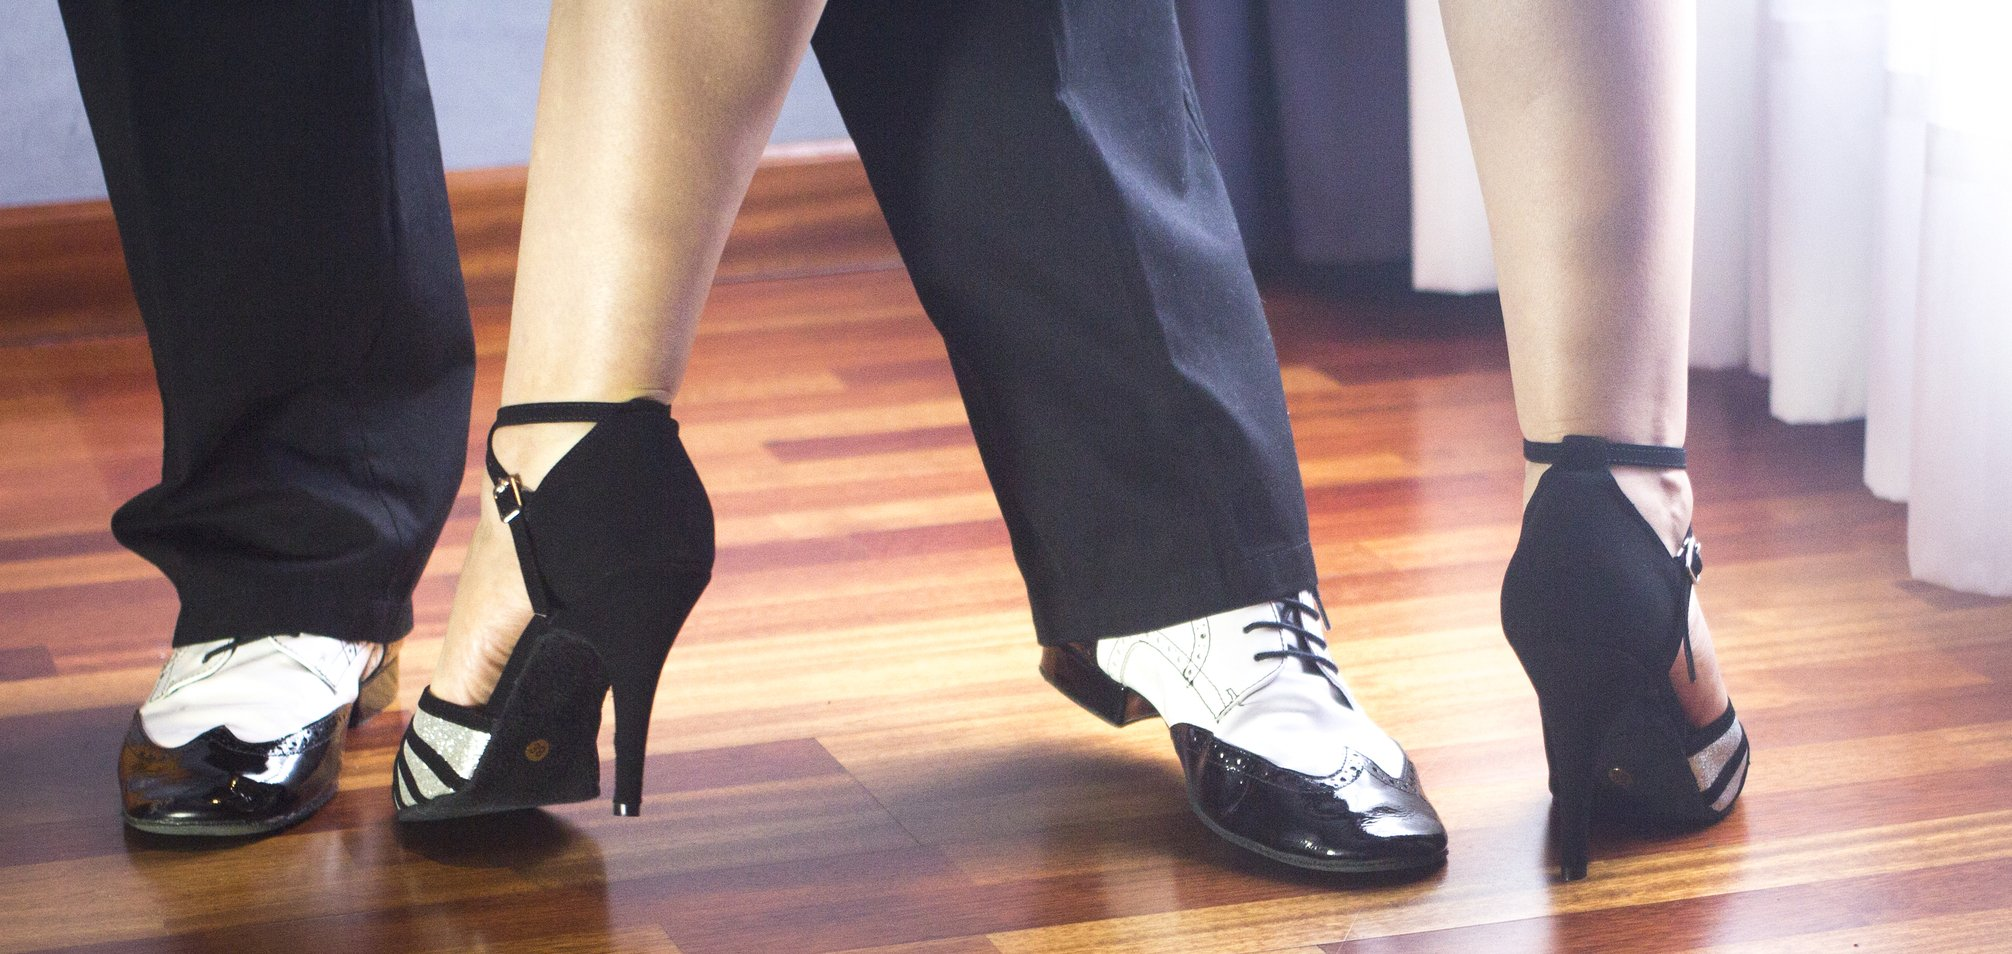 Ballroom dance has been around for centuries and has evolved into a number of popular styles.